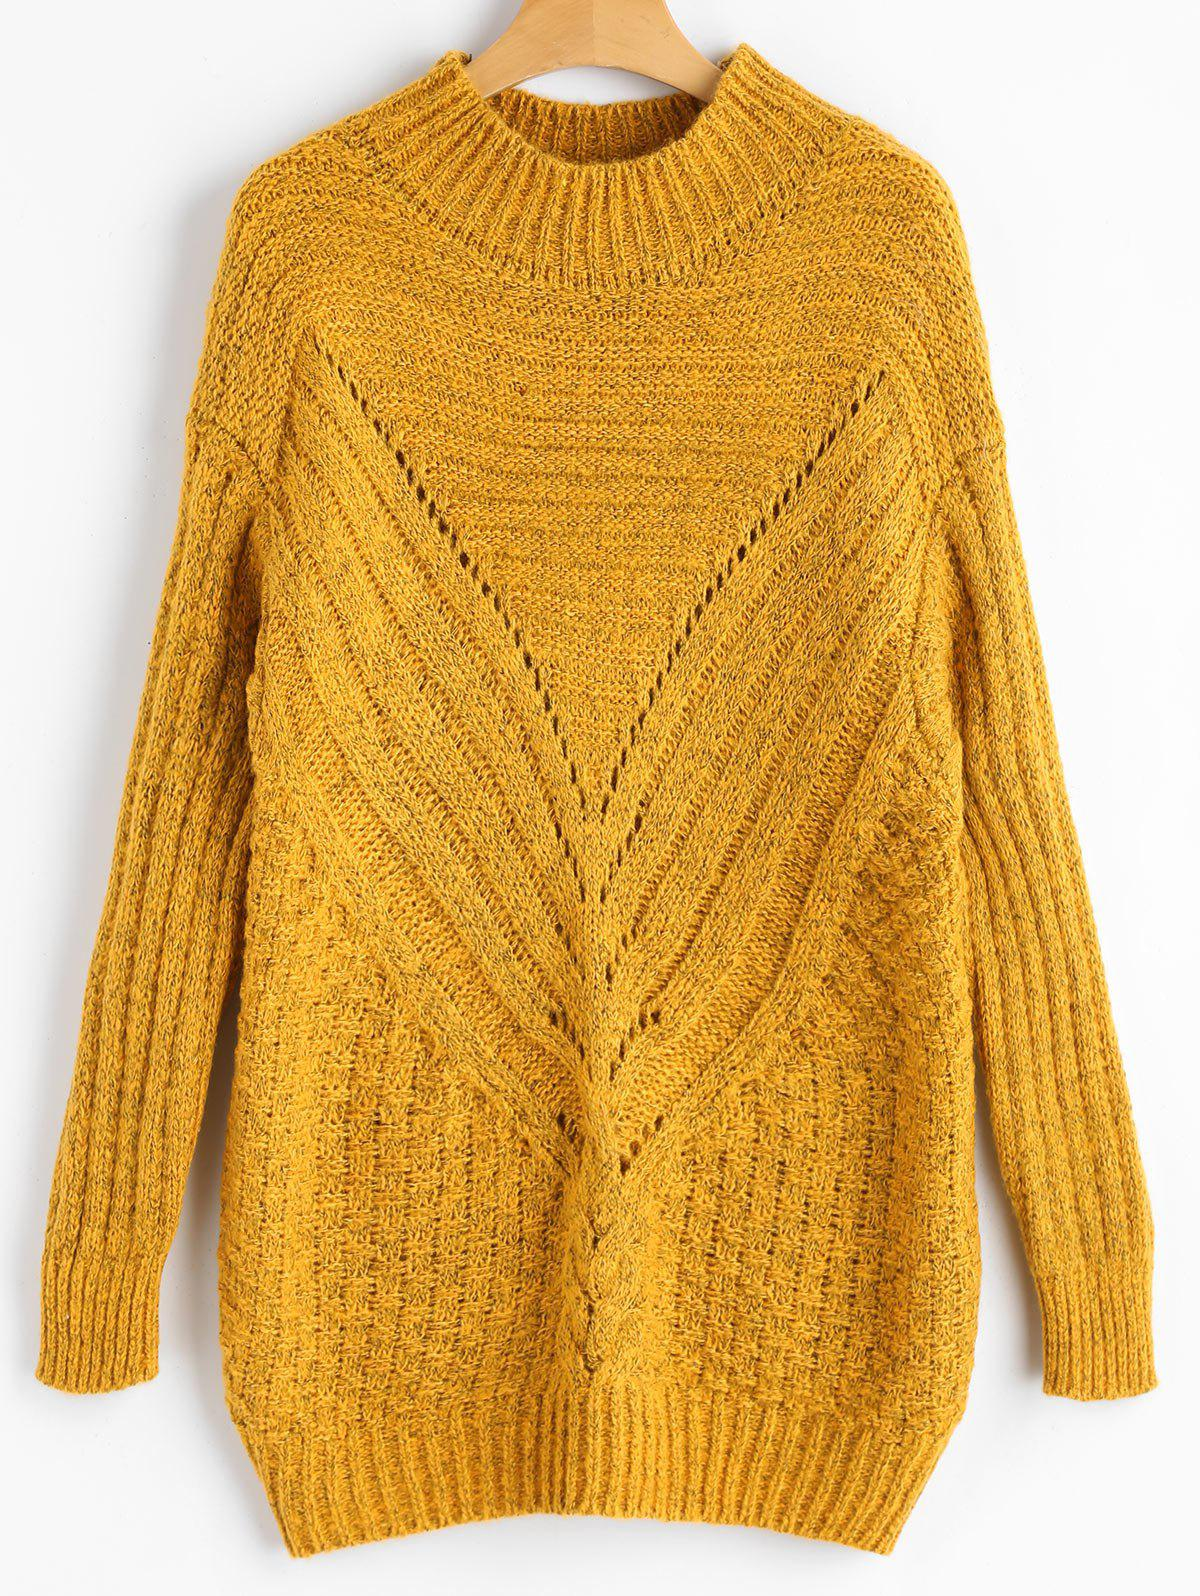 High Neck Hollow Out Chunky Sweater 234927601